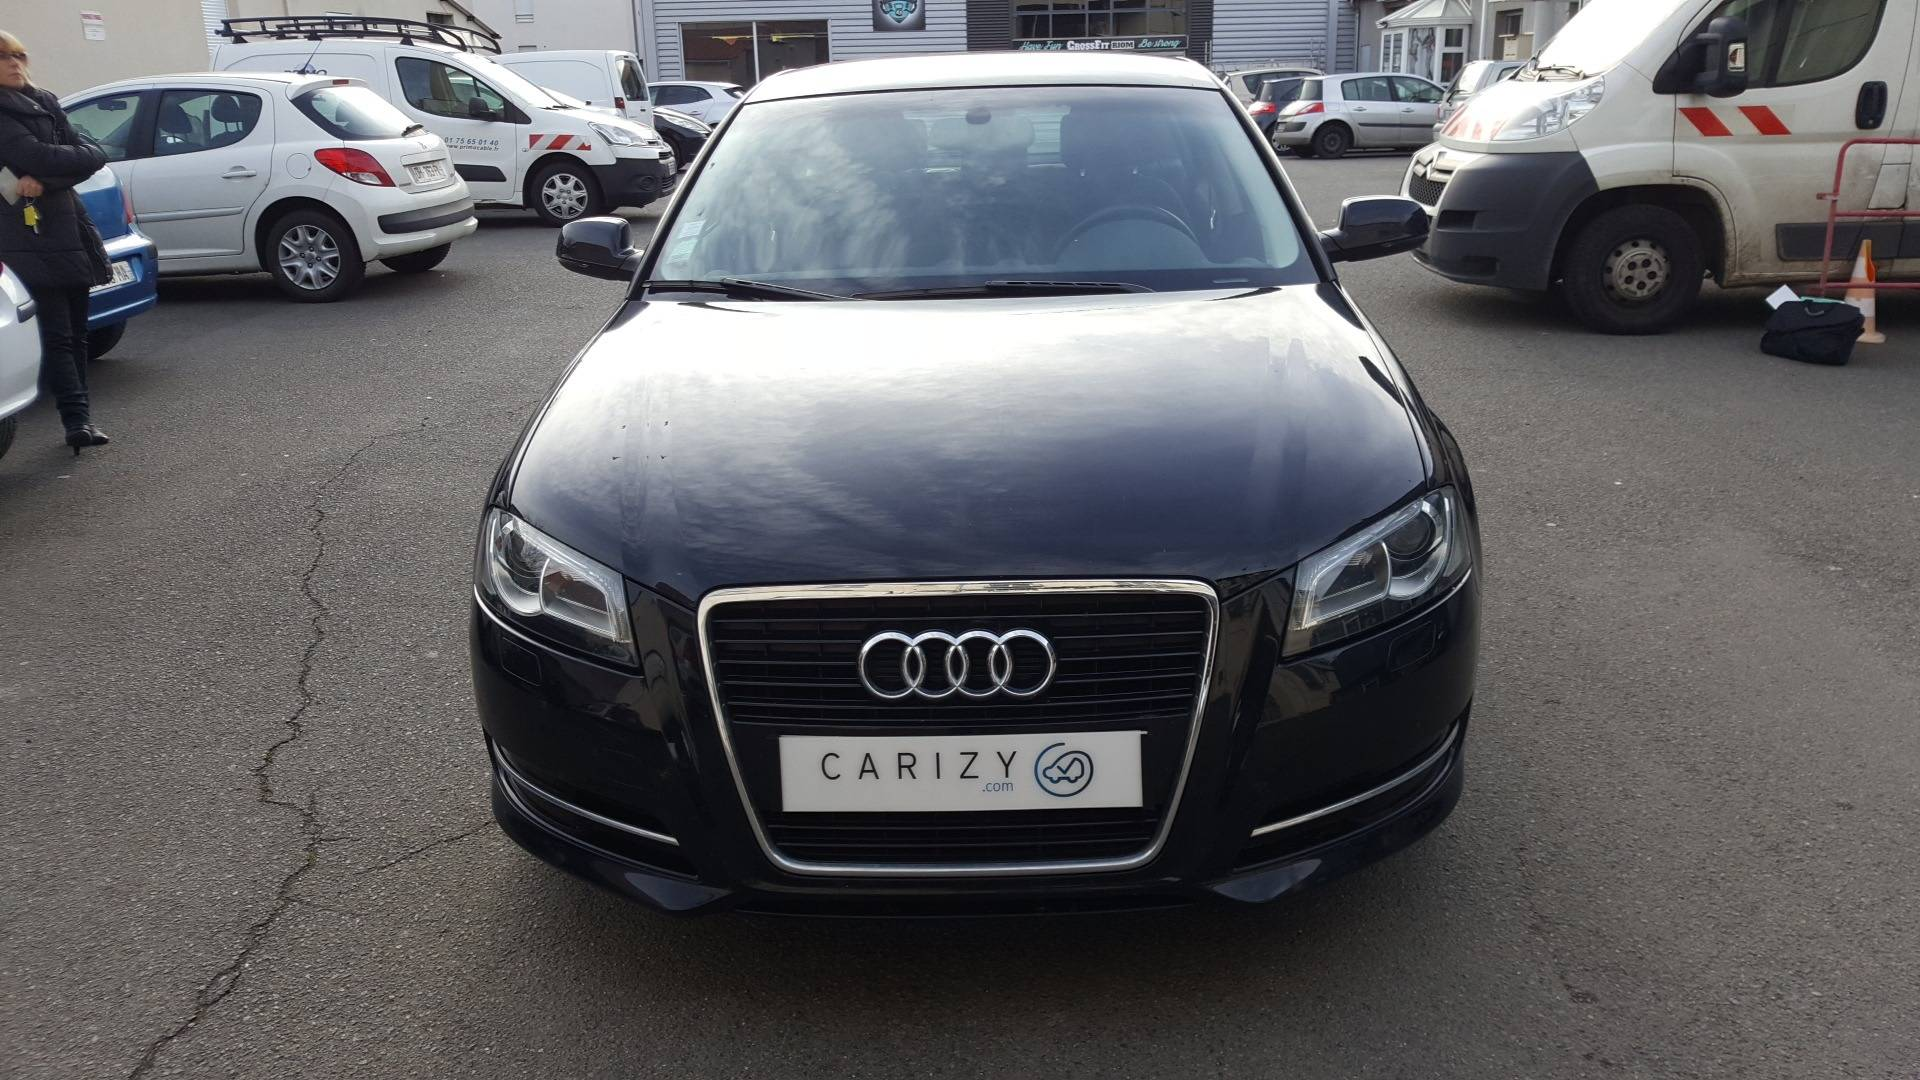 audi a3 d 39 occasion sportback 1 6 tdi 105 attraction start stop clermont ferrand carizy. Black Bedroom Furniture Sets. Home Design Ideas